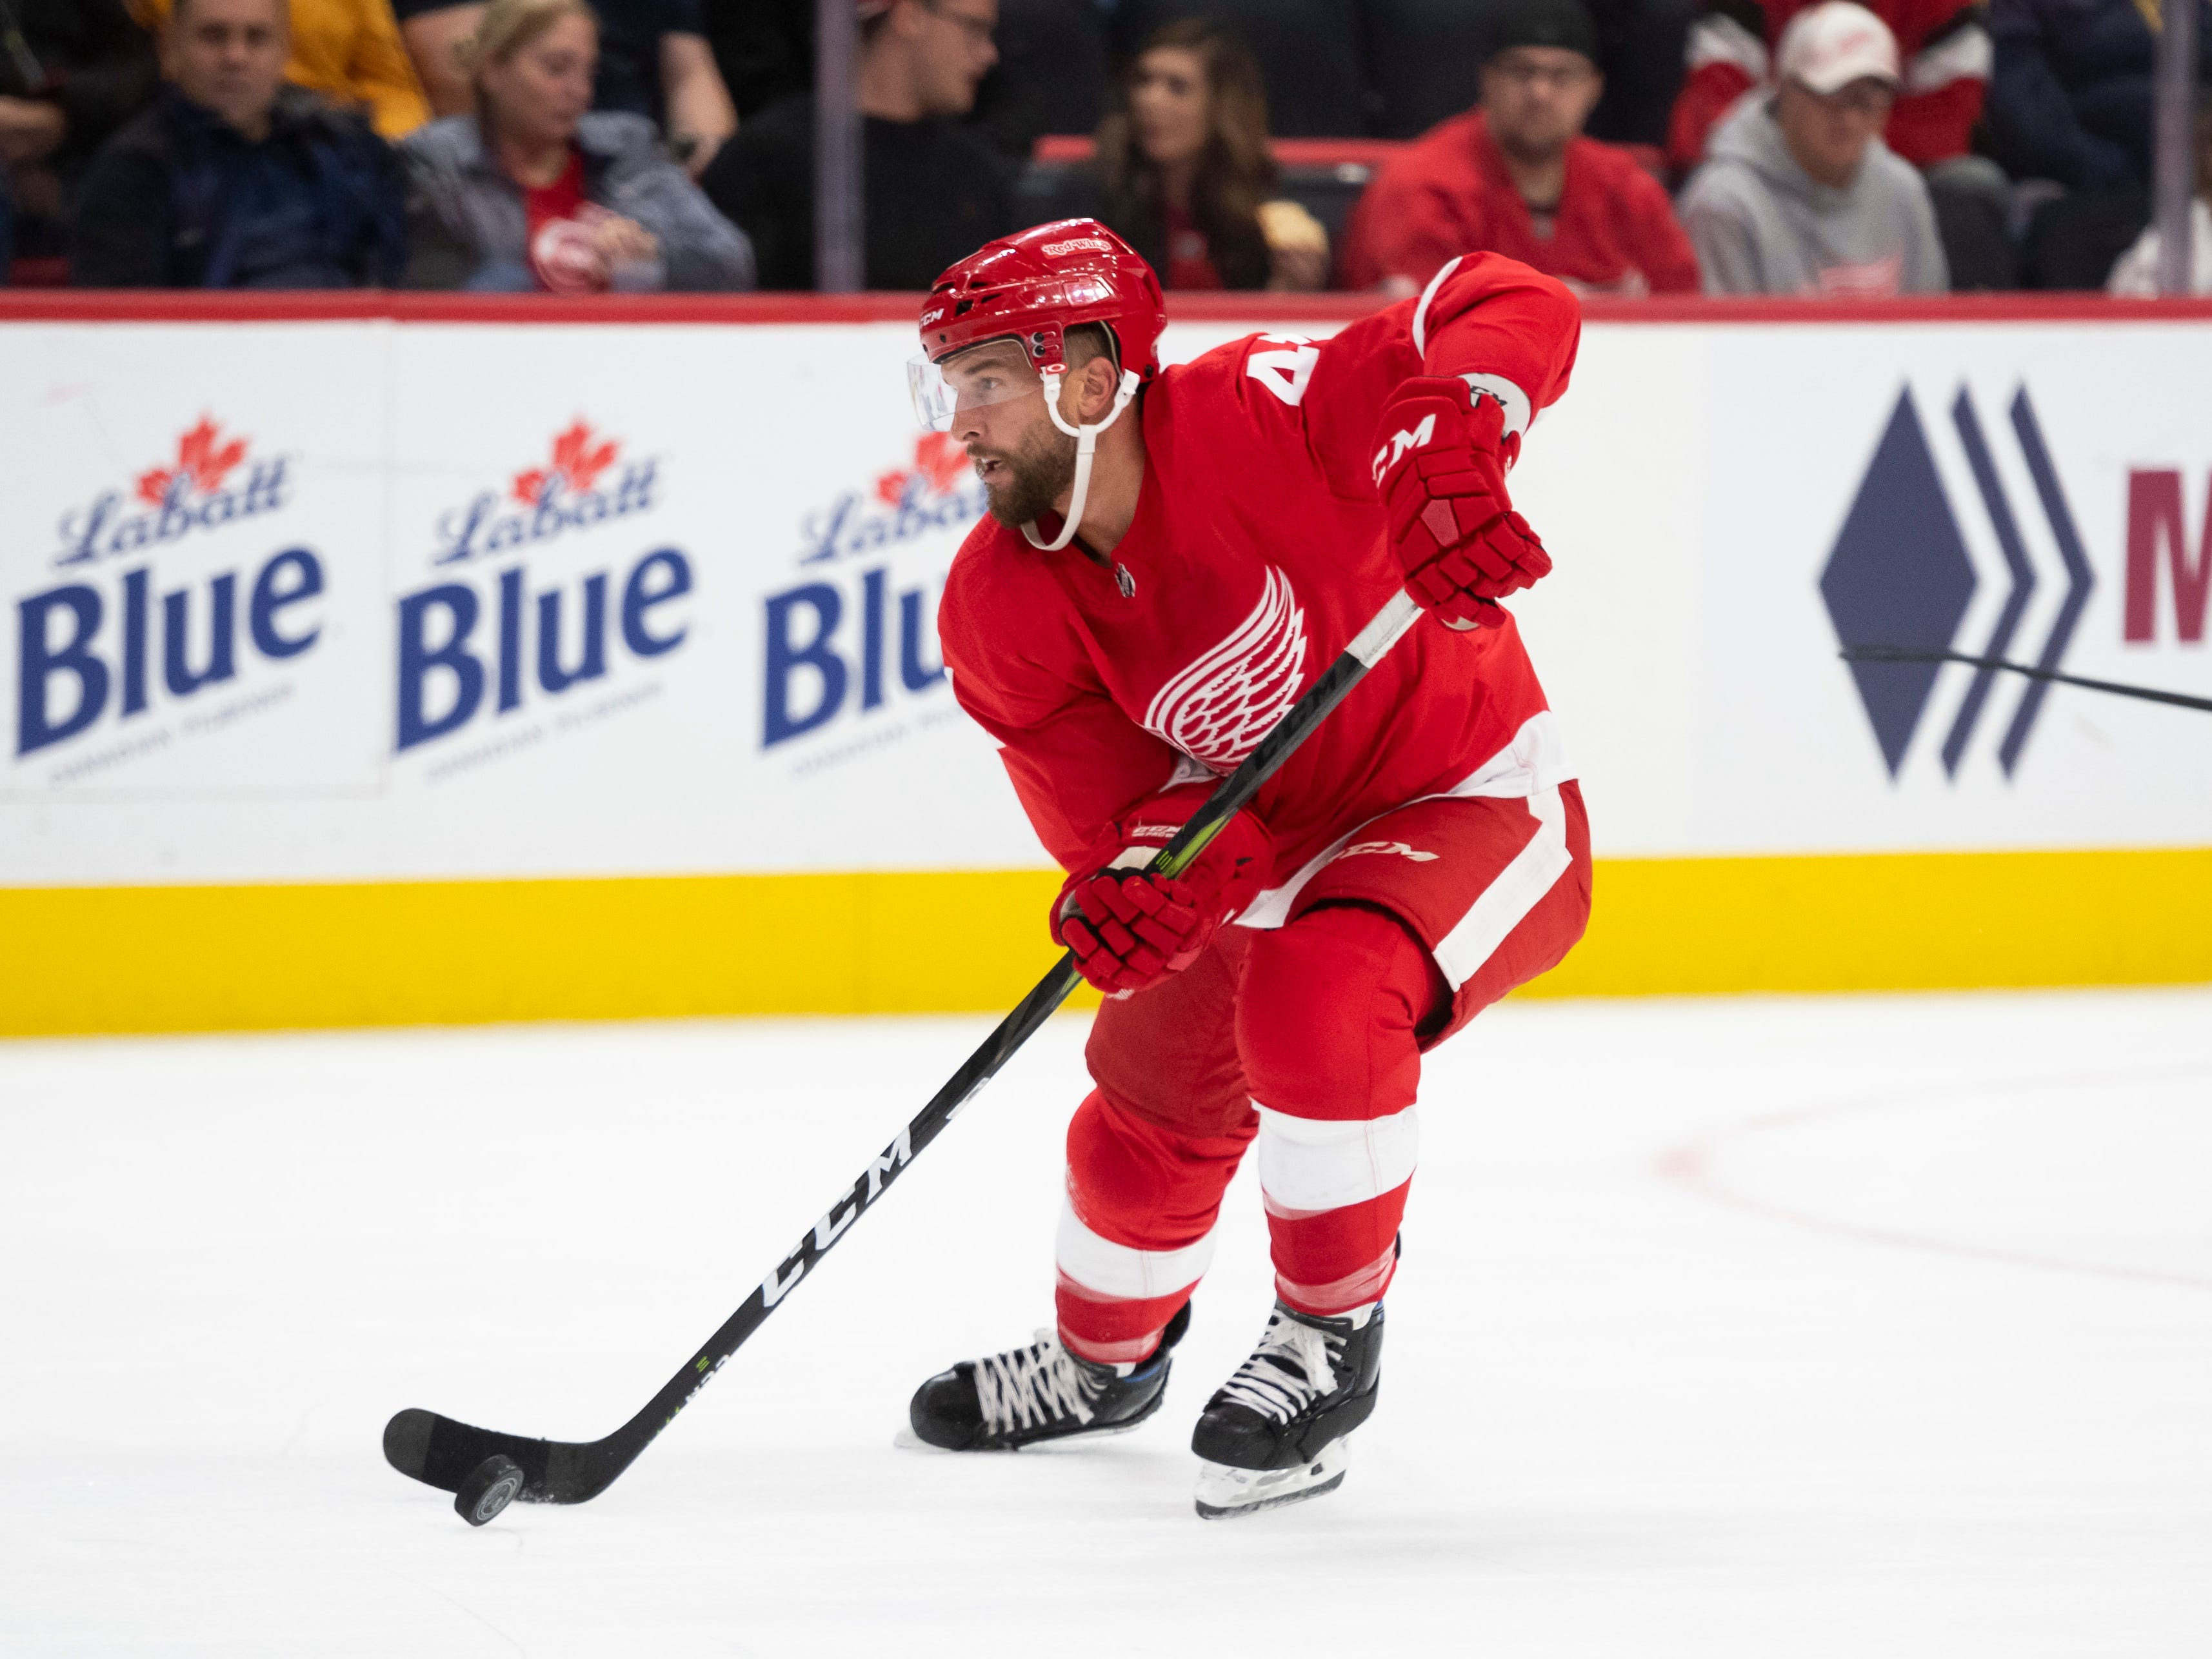 14. Luke Glendening, C, Detroit: The Wings aren't going to give him away because Glendening has term left and doesn't break the bank. But Toronto, especially, is interested in this defensive-forward demon.